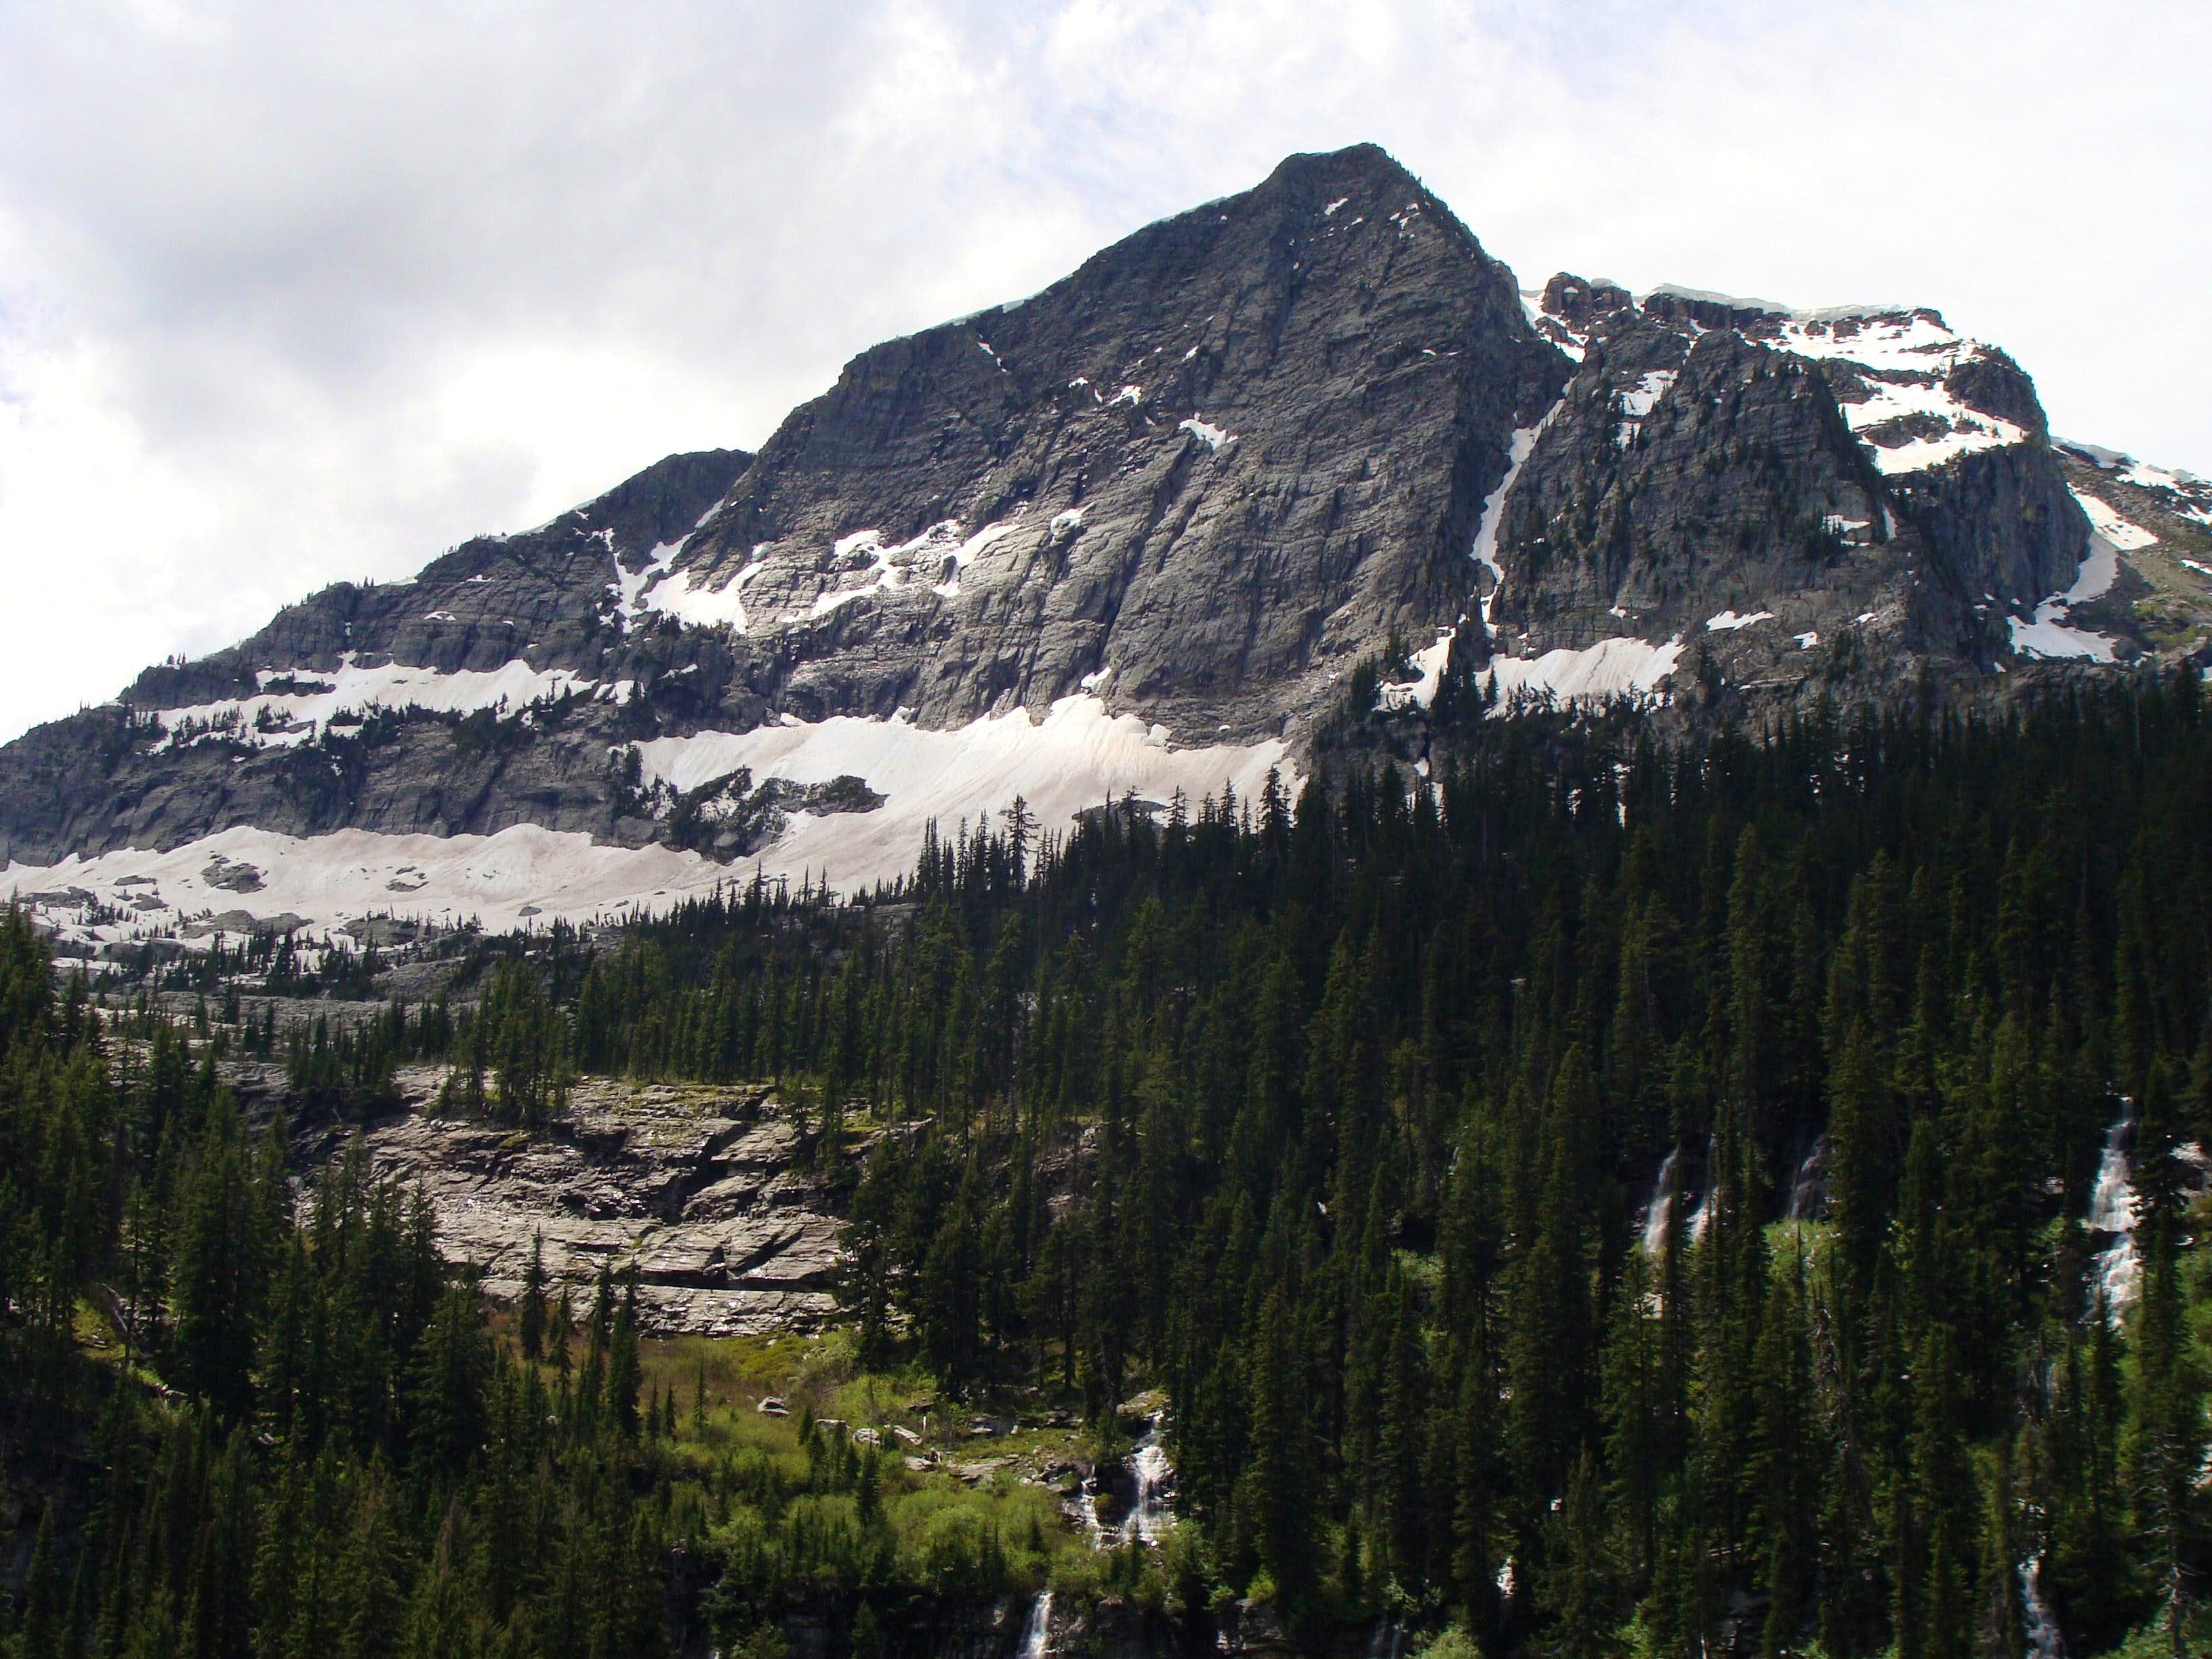 St. Paul Peak